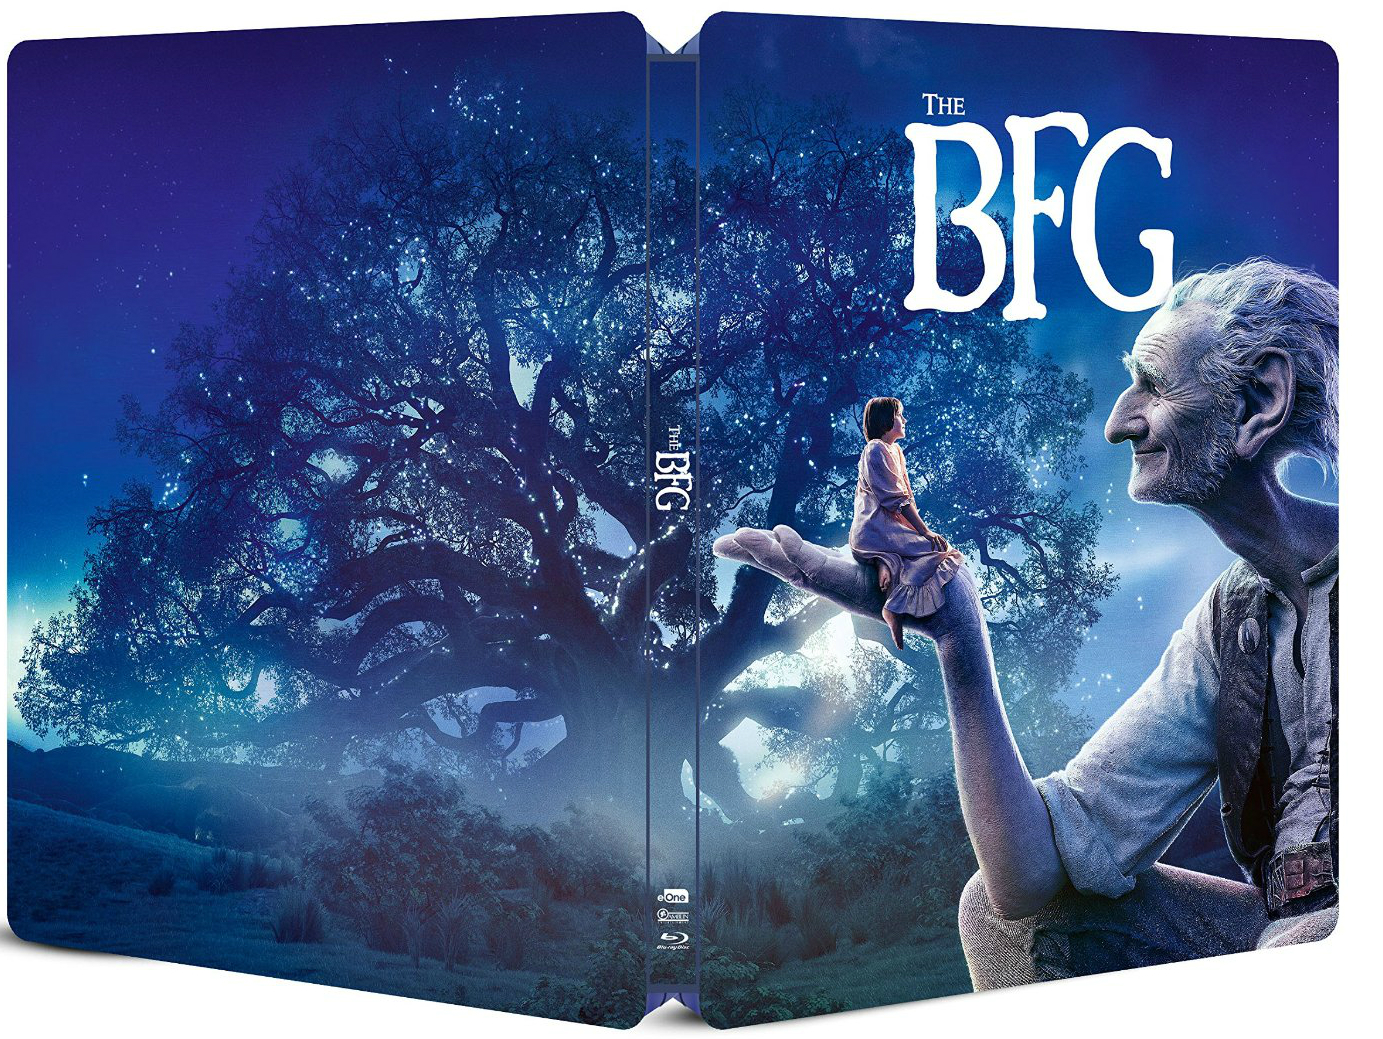 The BFG SteelBook outside